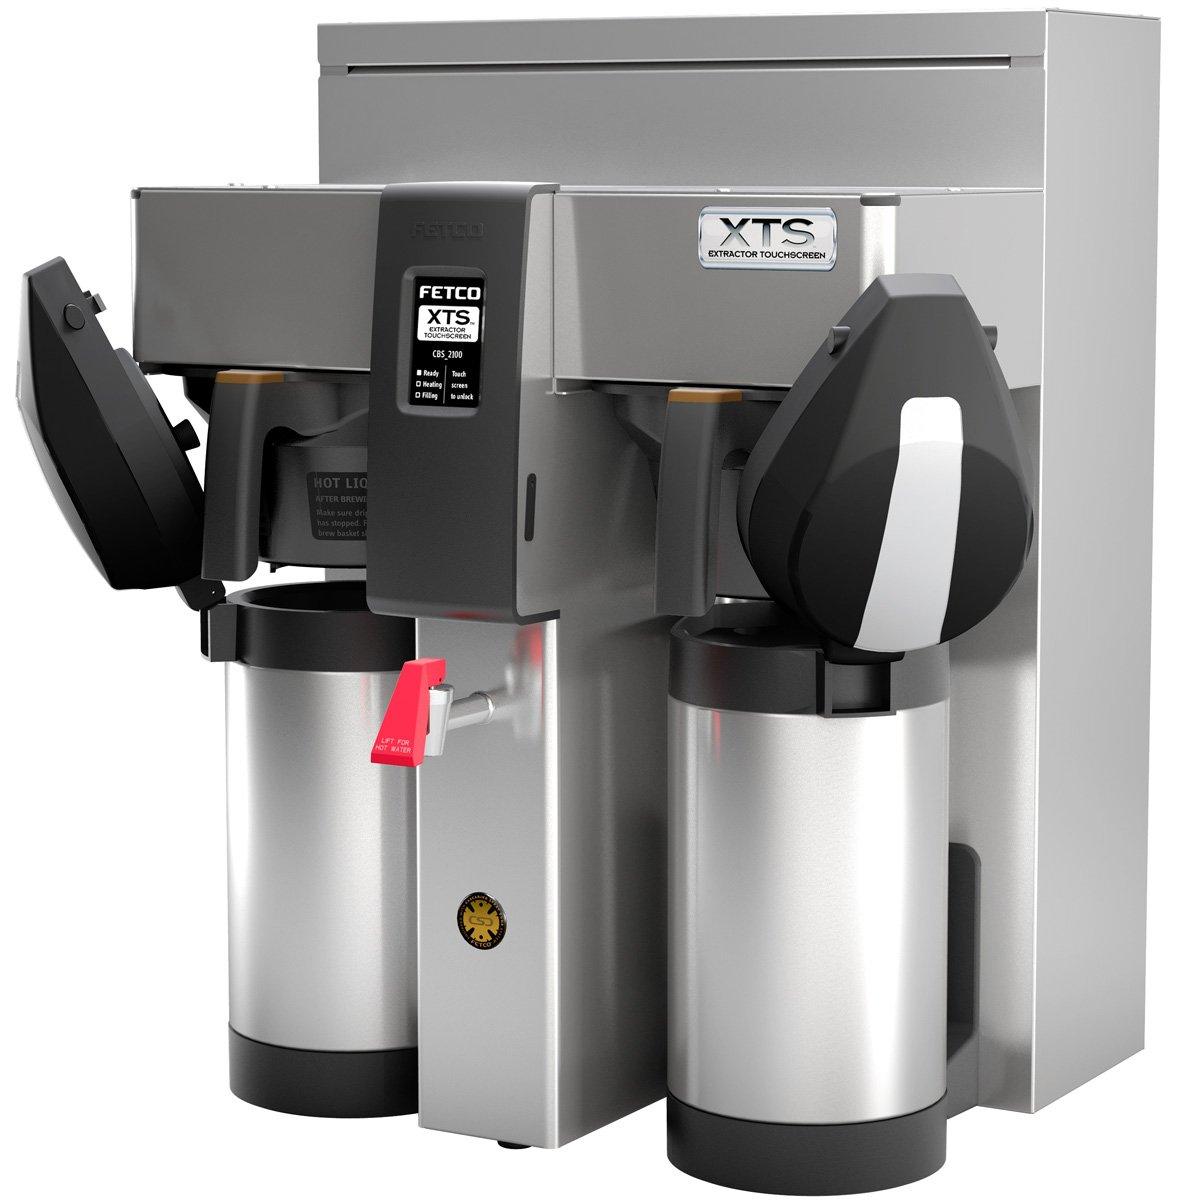 Fetco CBS-2132XTS Twin Station Touchscreen Series Airpot Coffee Brewer